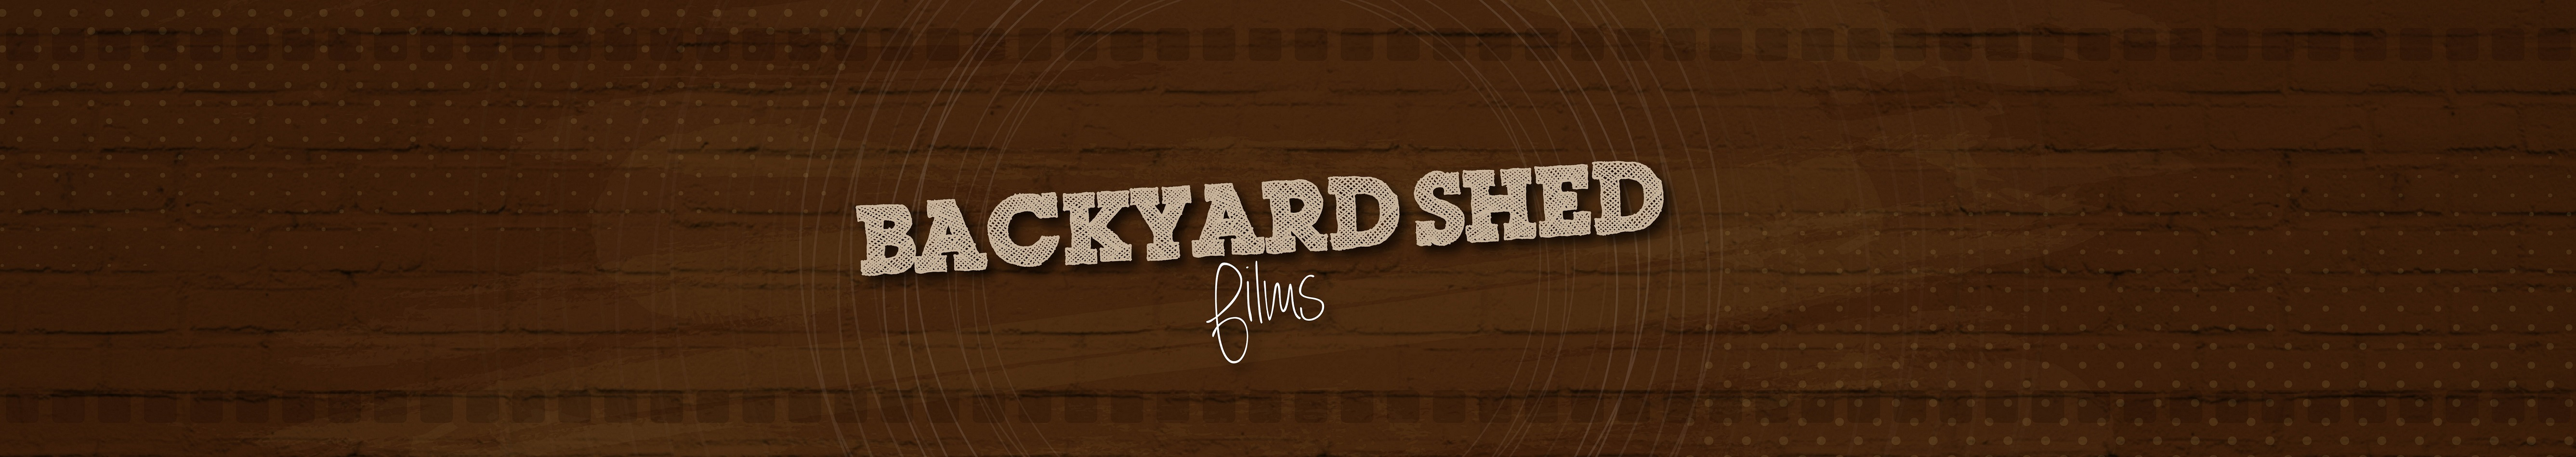 Homepage Sidebar | Backyard Shed Films